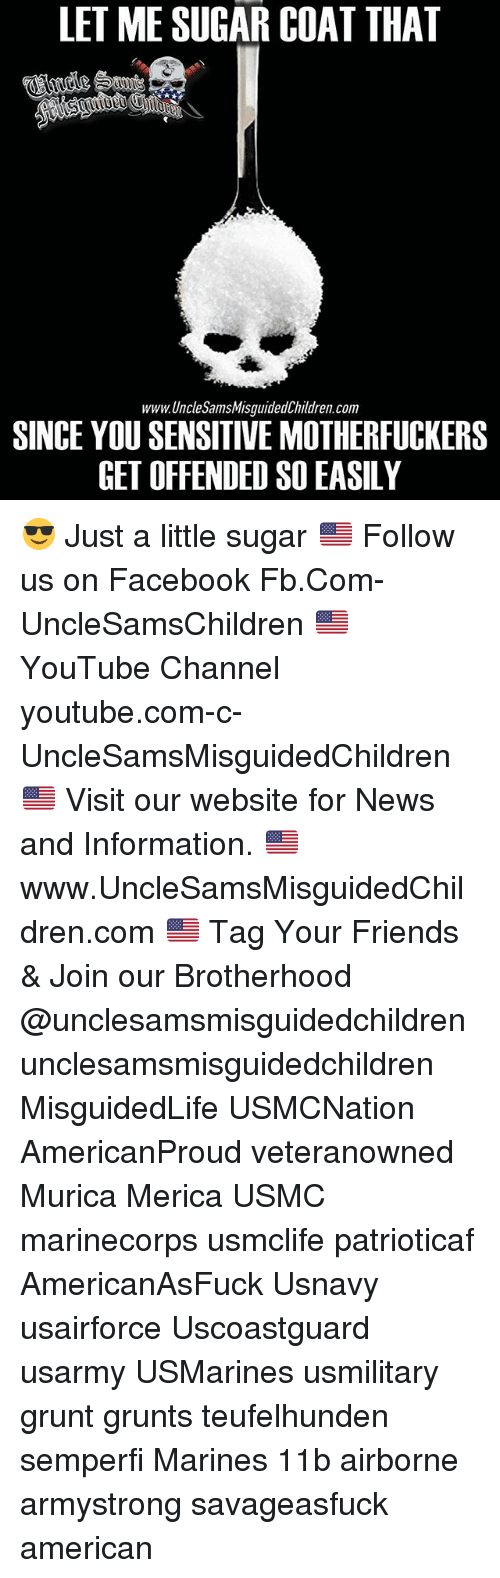 Facebook, Friends, and Memes: LET ME SUGAR COAT THAT  www.UncleSamsMisguidedChildren.com  SINCE YOU SENSITIVE MOTHERFUCKERS  GET OFFENDED SO EASILY 😎 Just a little sugar 🇺🇸 Follow us on Facebook Fb.Com-UncleSamsChildren 🇺🇸YouTube Channel youtube.com-c-UncleSamsMisguidedChildren 🇺🇸 Visit our website for News and Information. 🇺🇸 www.UncleSamsMisguidedChildren.com 🇺🇸 Tag Your Friends & Join our Brotherhood @unclesamsmisguidedchildren unclesamsmisguidedchildren MisguidedLife USMCNation AmericanProud veteranowned Murica Merica USMC marinecorps usmclife patrioticaf AmericanAsFuck Usnavy usairforce Uscoastguard usarmy USMarines usmilitary grunt grunts teufelhunden semperfi Marines 11b airborne armystrong savageasfuck american